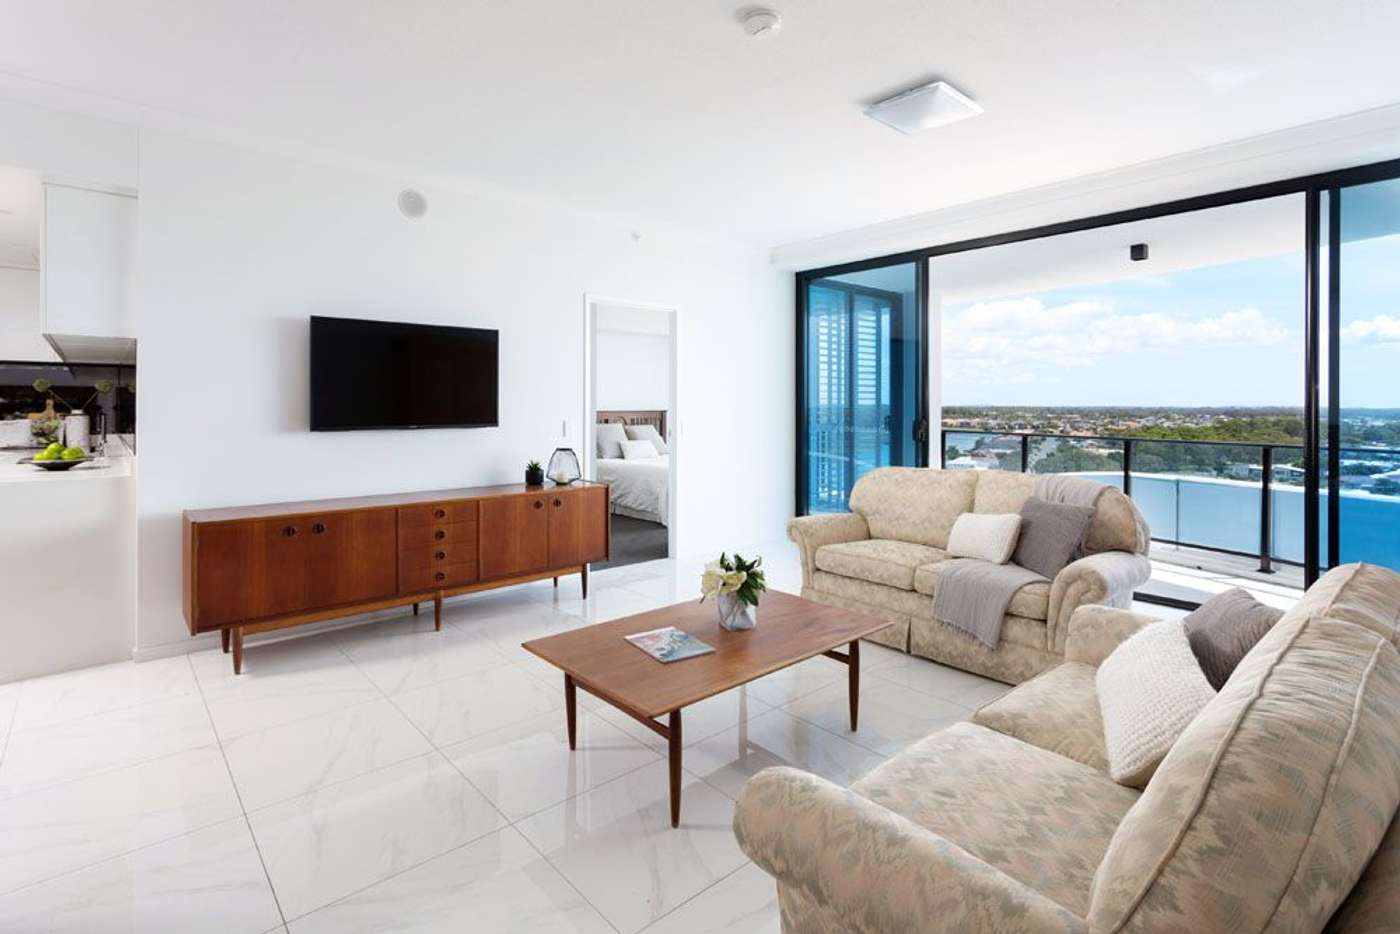 Fifth view of Homely unit listing, 31005/5 Harbour Side Court, Biggera Waters QLD 4216